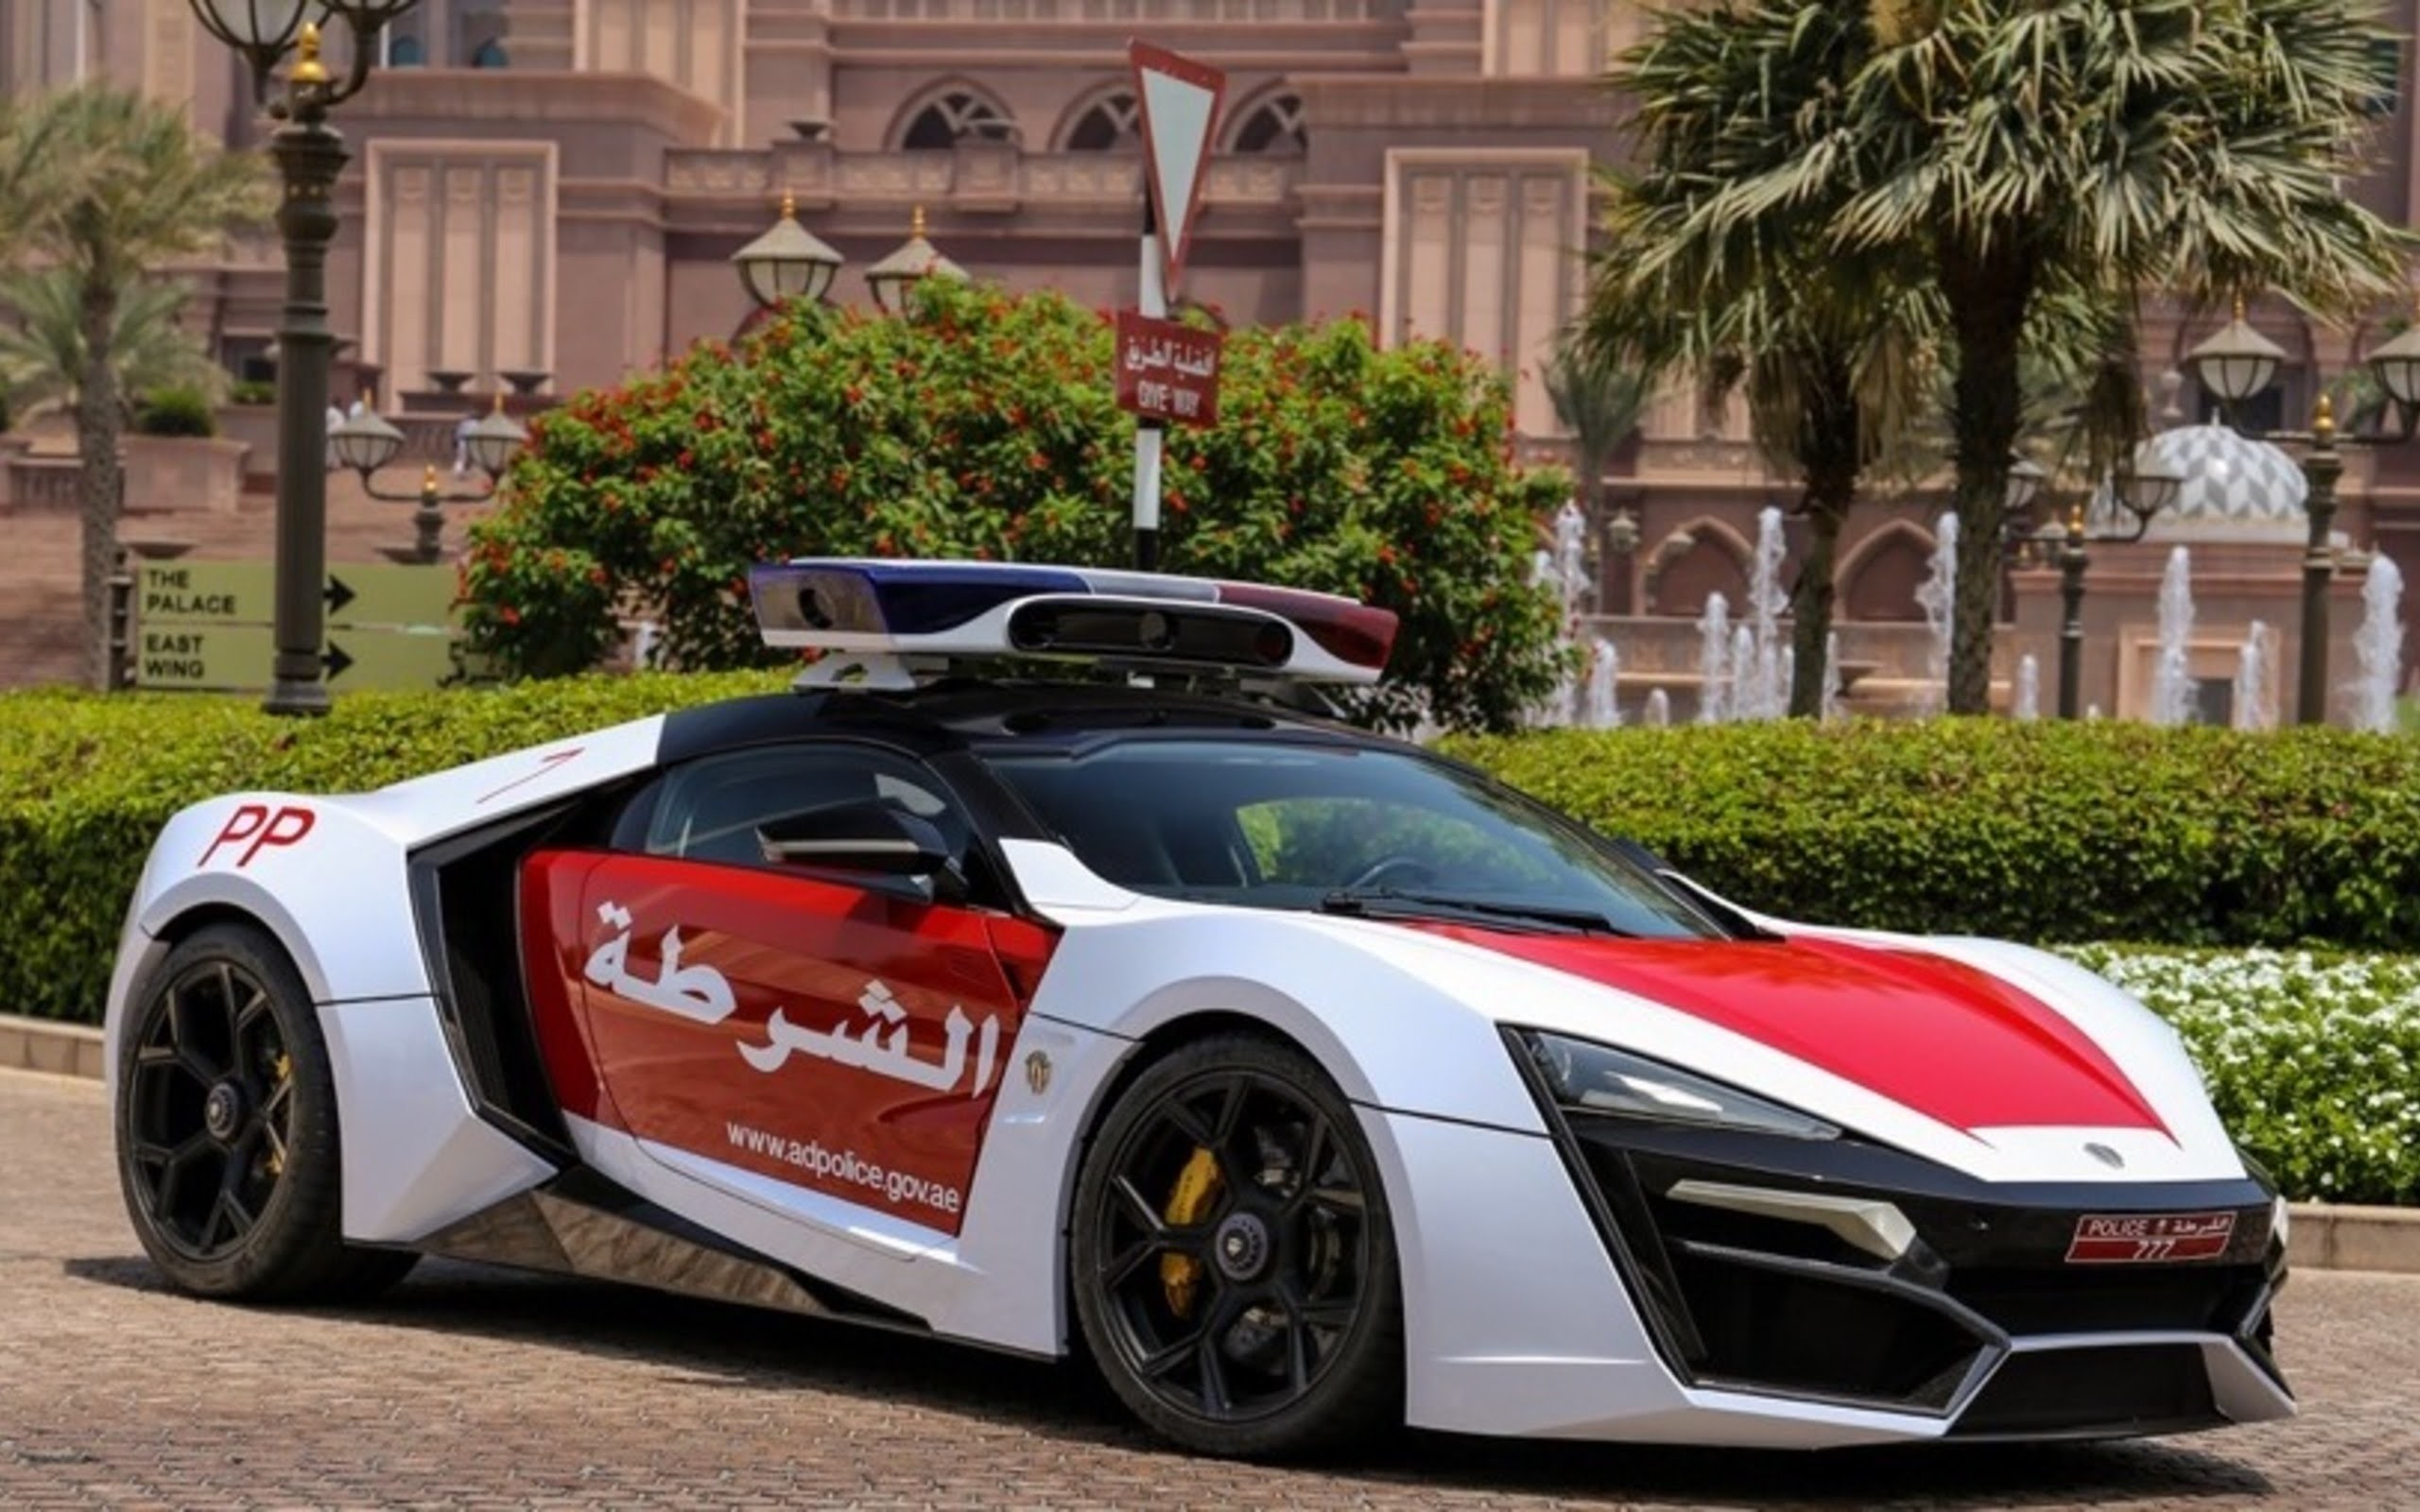 Res: 2560x1600, Lykan Hypersport Car High Resolution Backgrounds Abu Dhabi Police Of Iphone